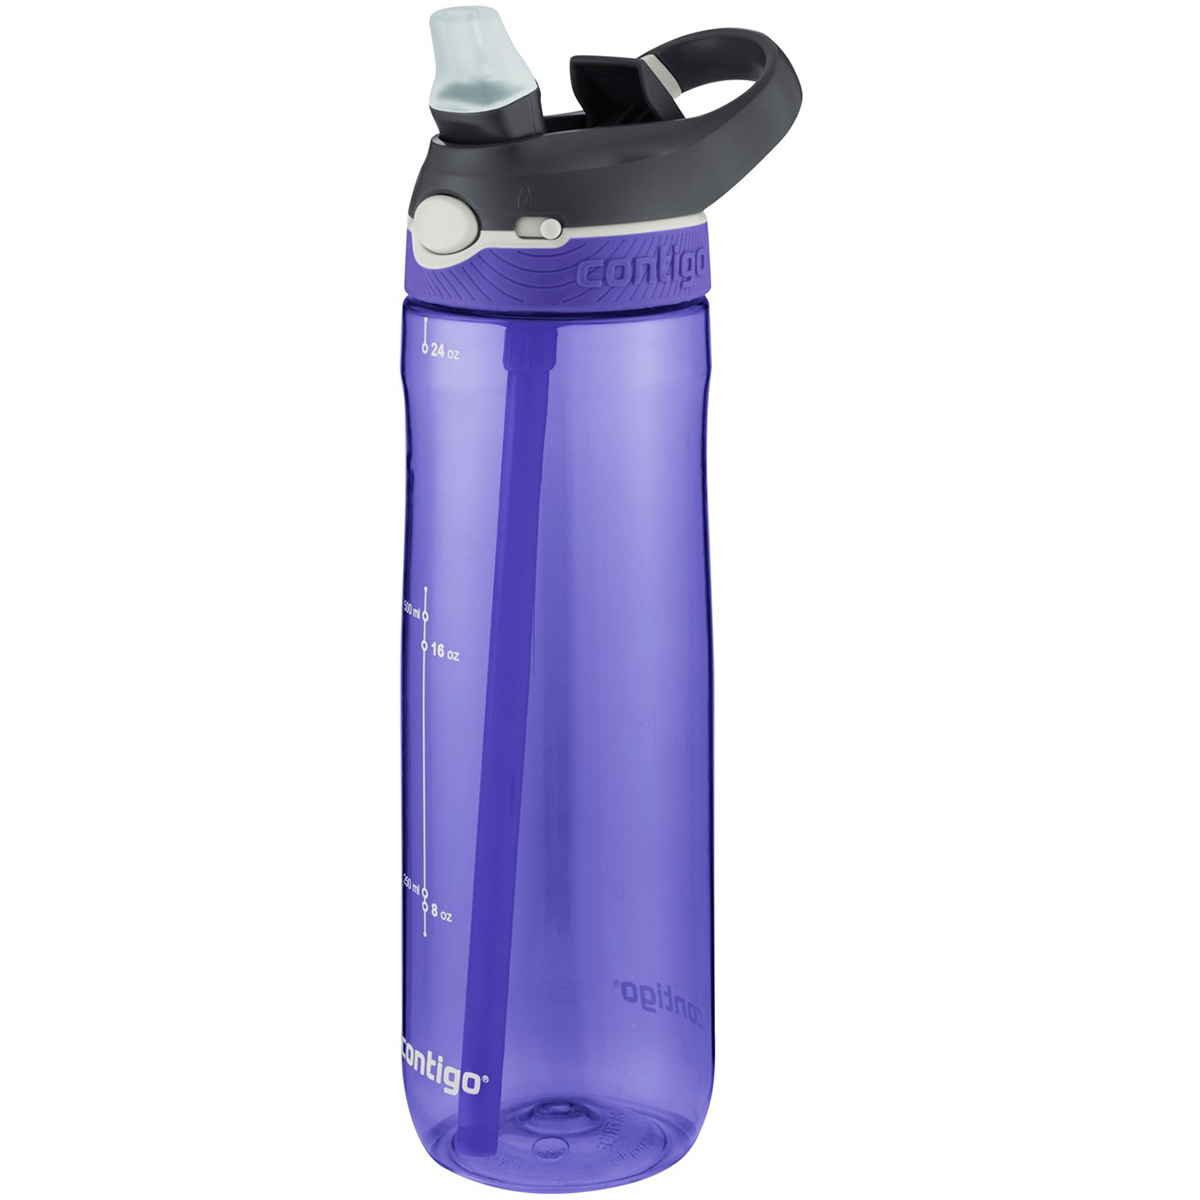 Contigo-24-oz-Ashland-Autospout-Water-Bottle miniature 8